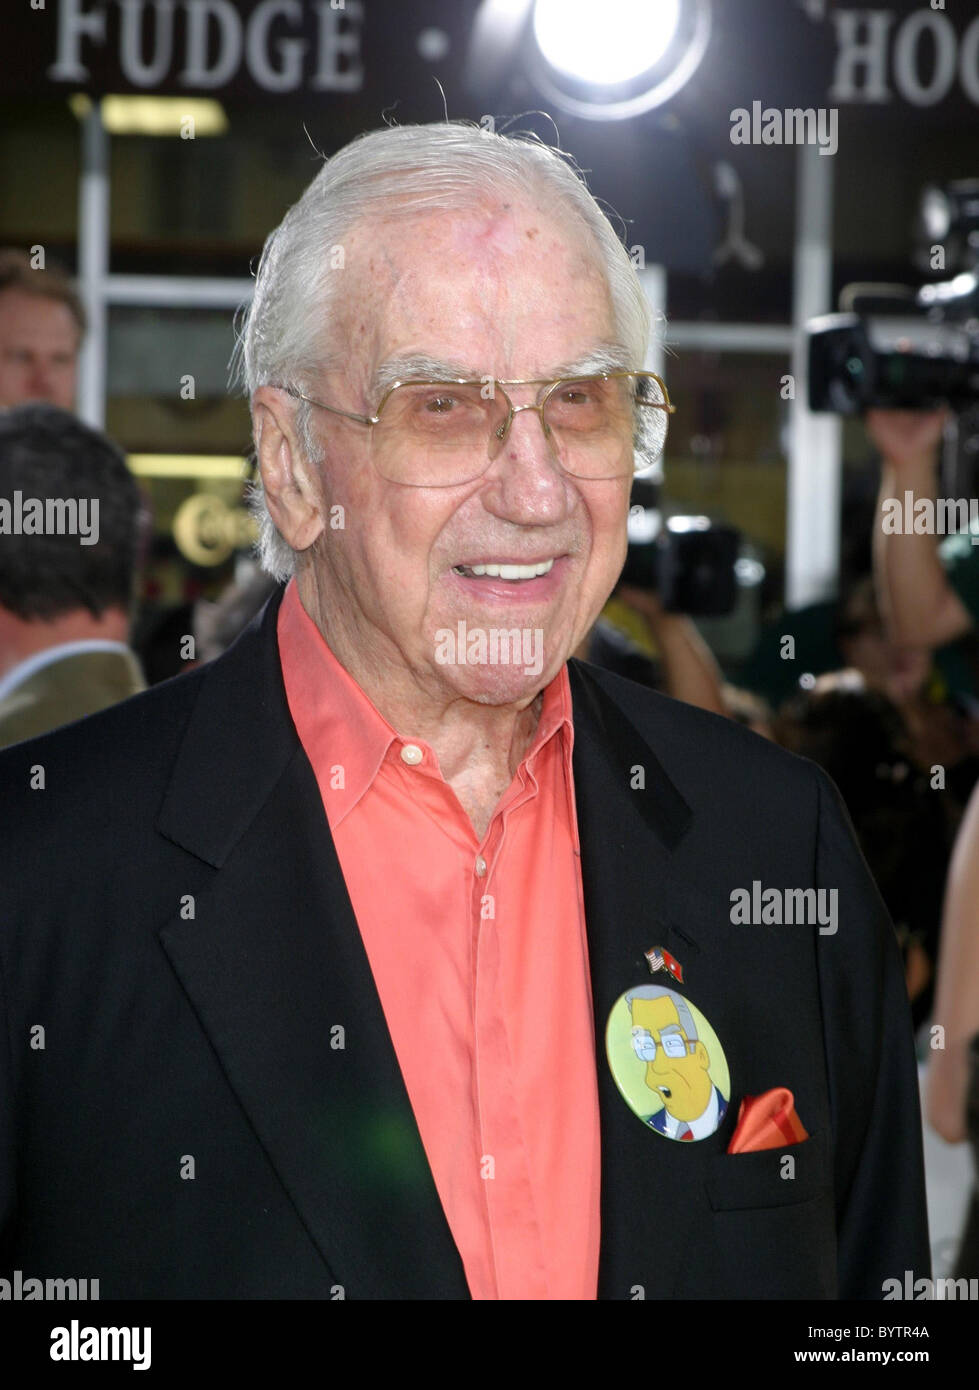 Ed Mcmahon The Simpsons Movie Premiere At The Mann Village Theater Stock Photo Alamy